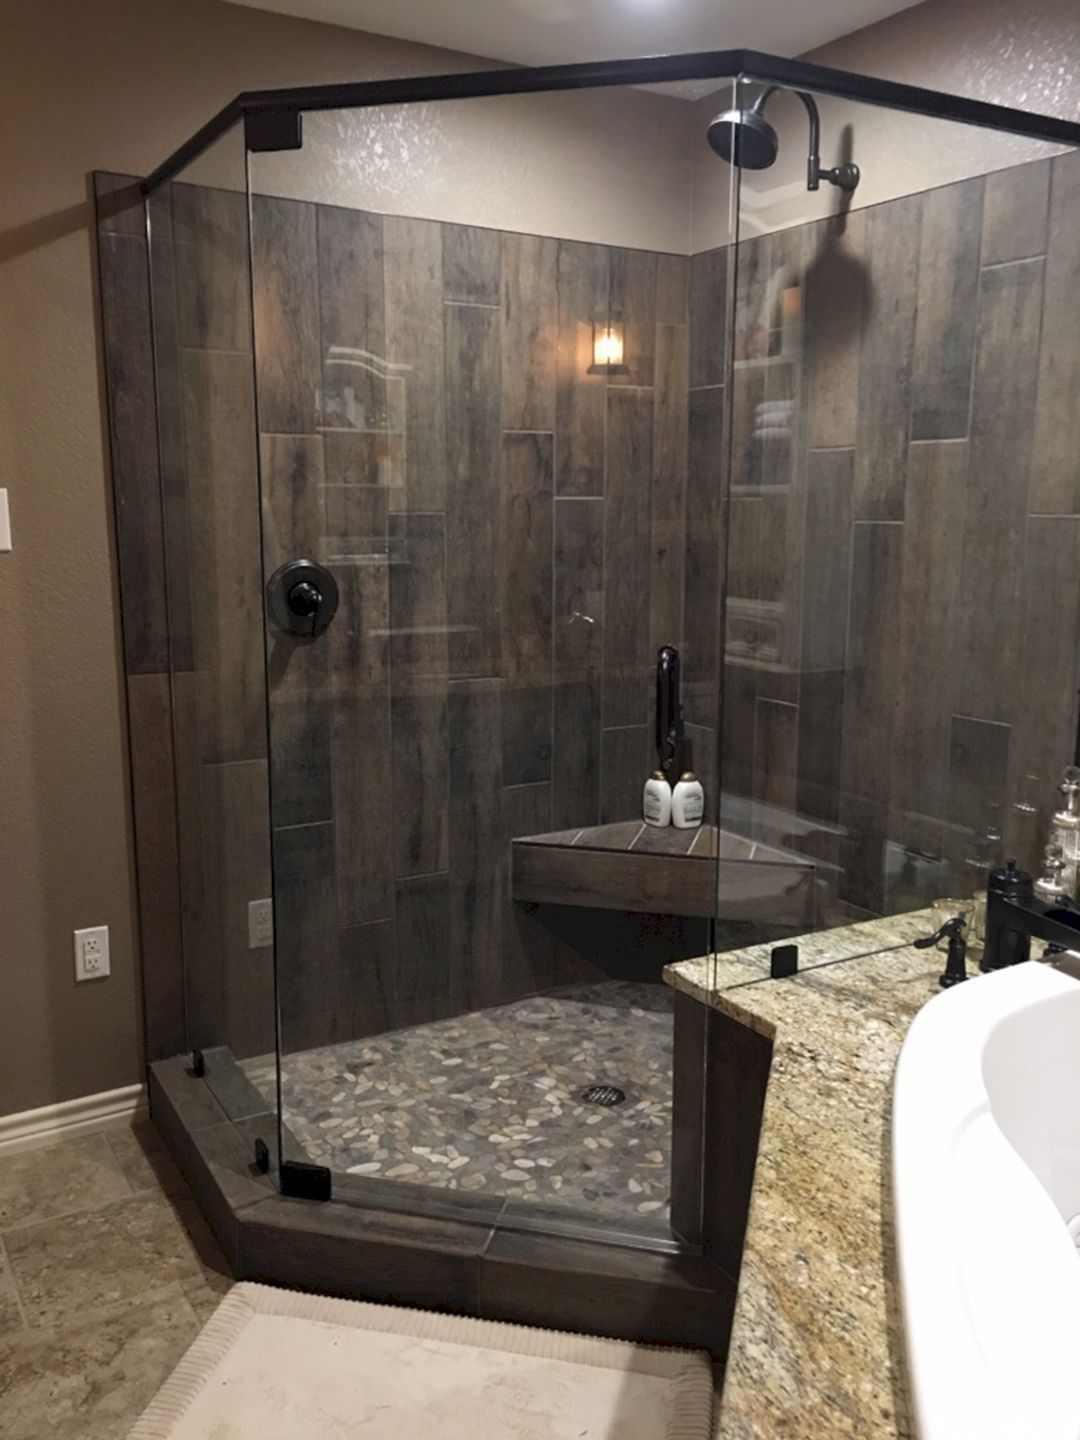 Phenomenal 45+ Amazing Rock Wall Bathroom You Need To Impersonate  Https://decoredo.com/13316 45 Amazing Rock Wall Bathroom  You Need To Impersonate/